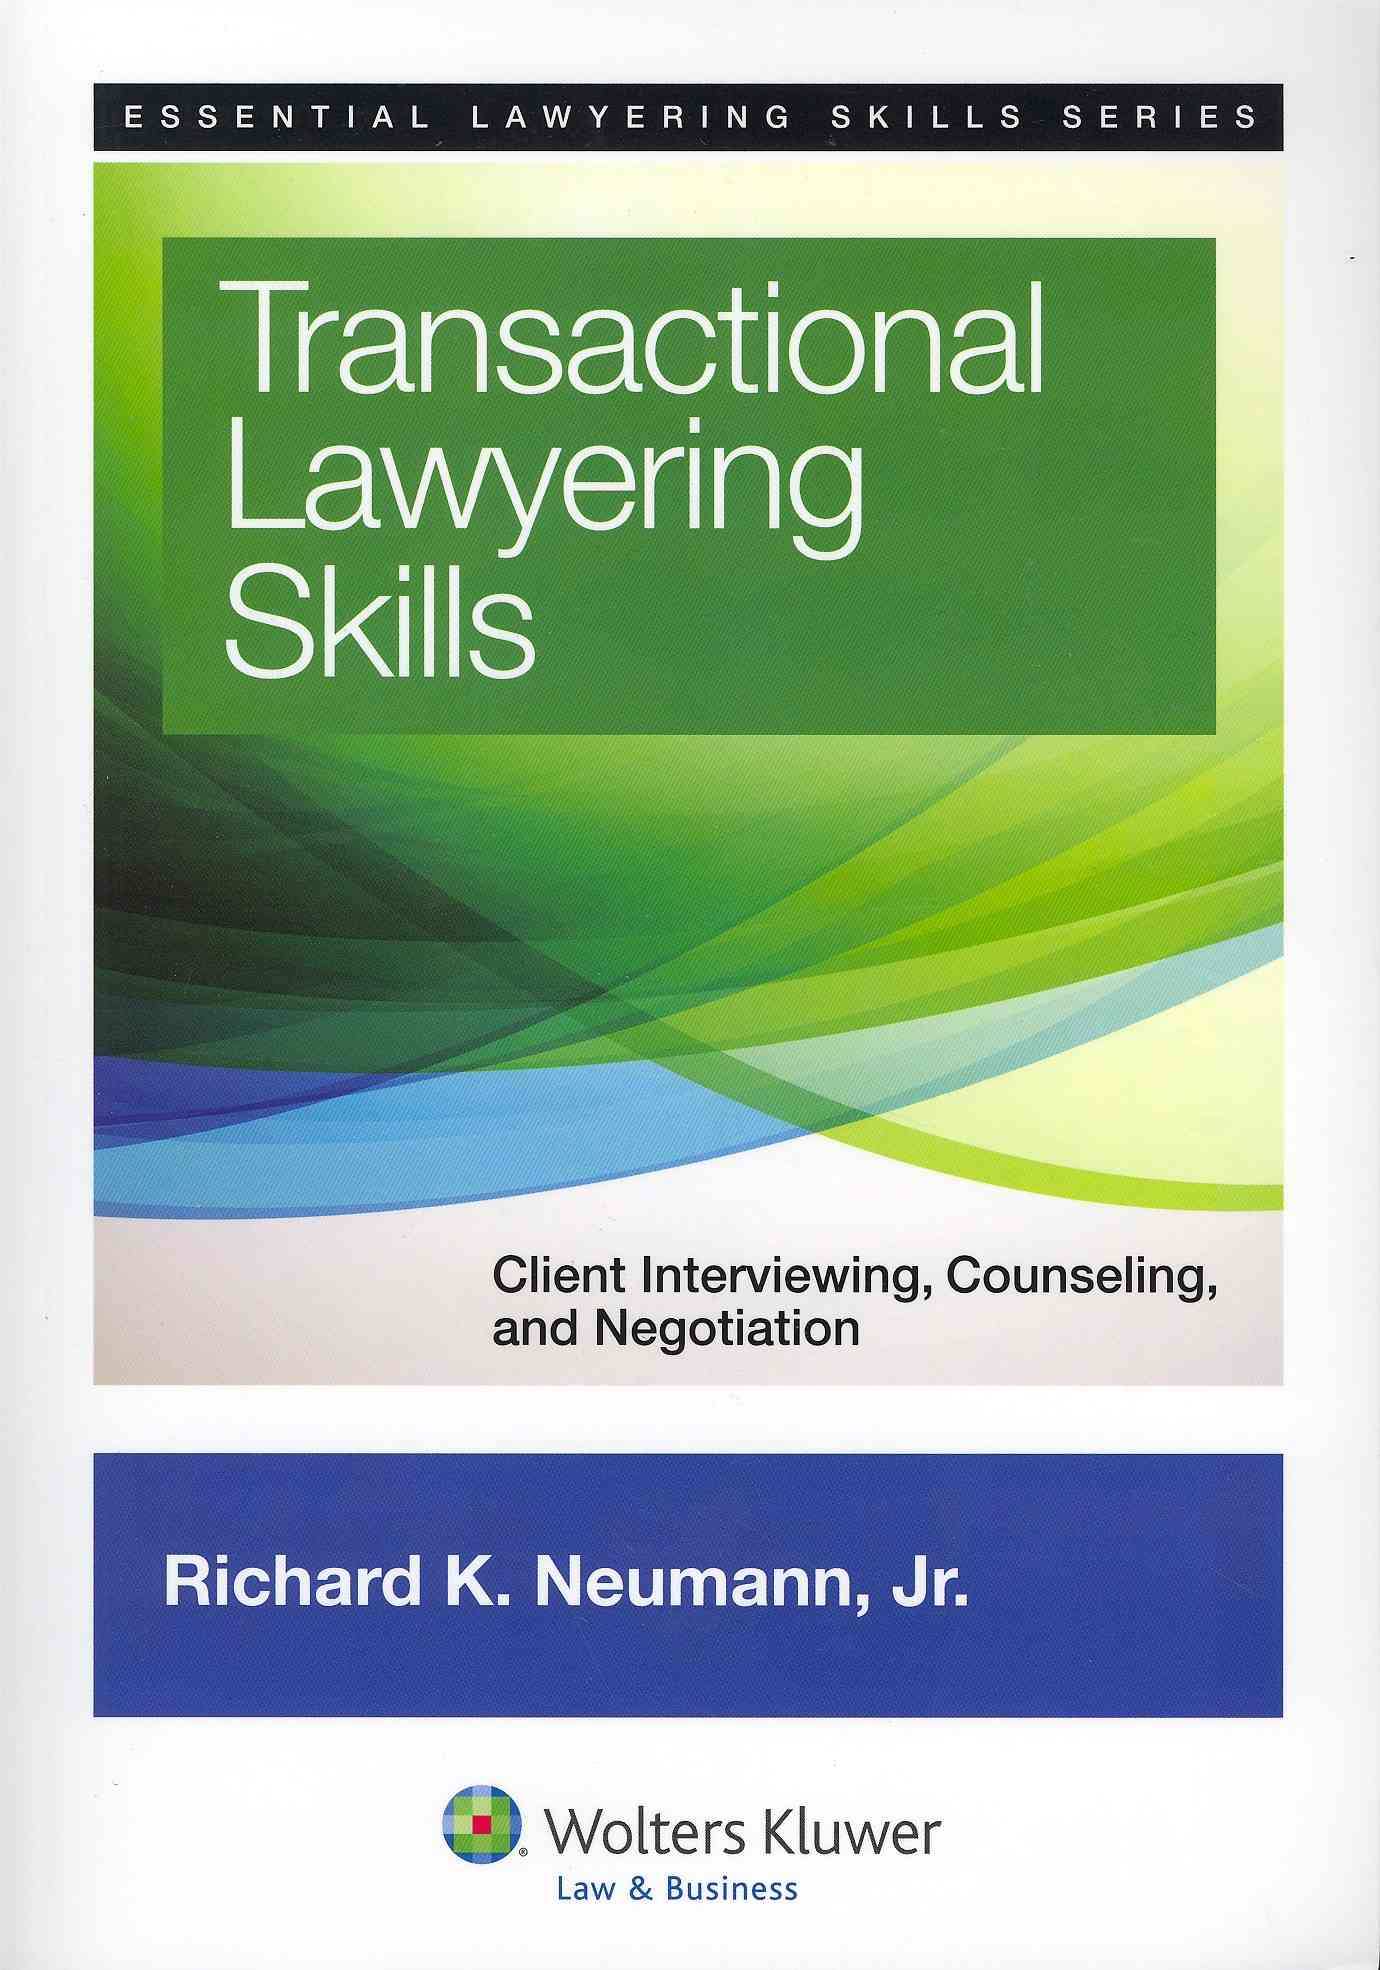 Transactional Lawyering Skills By Neumann, Richard K. Jr.